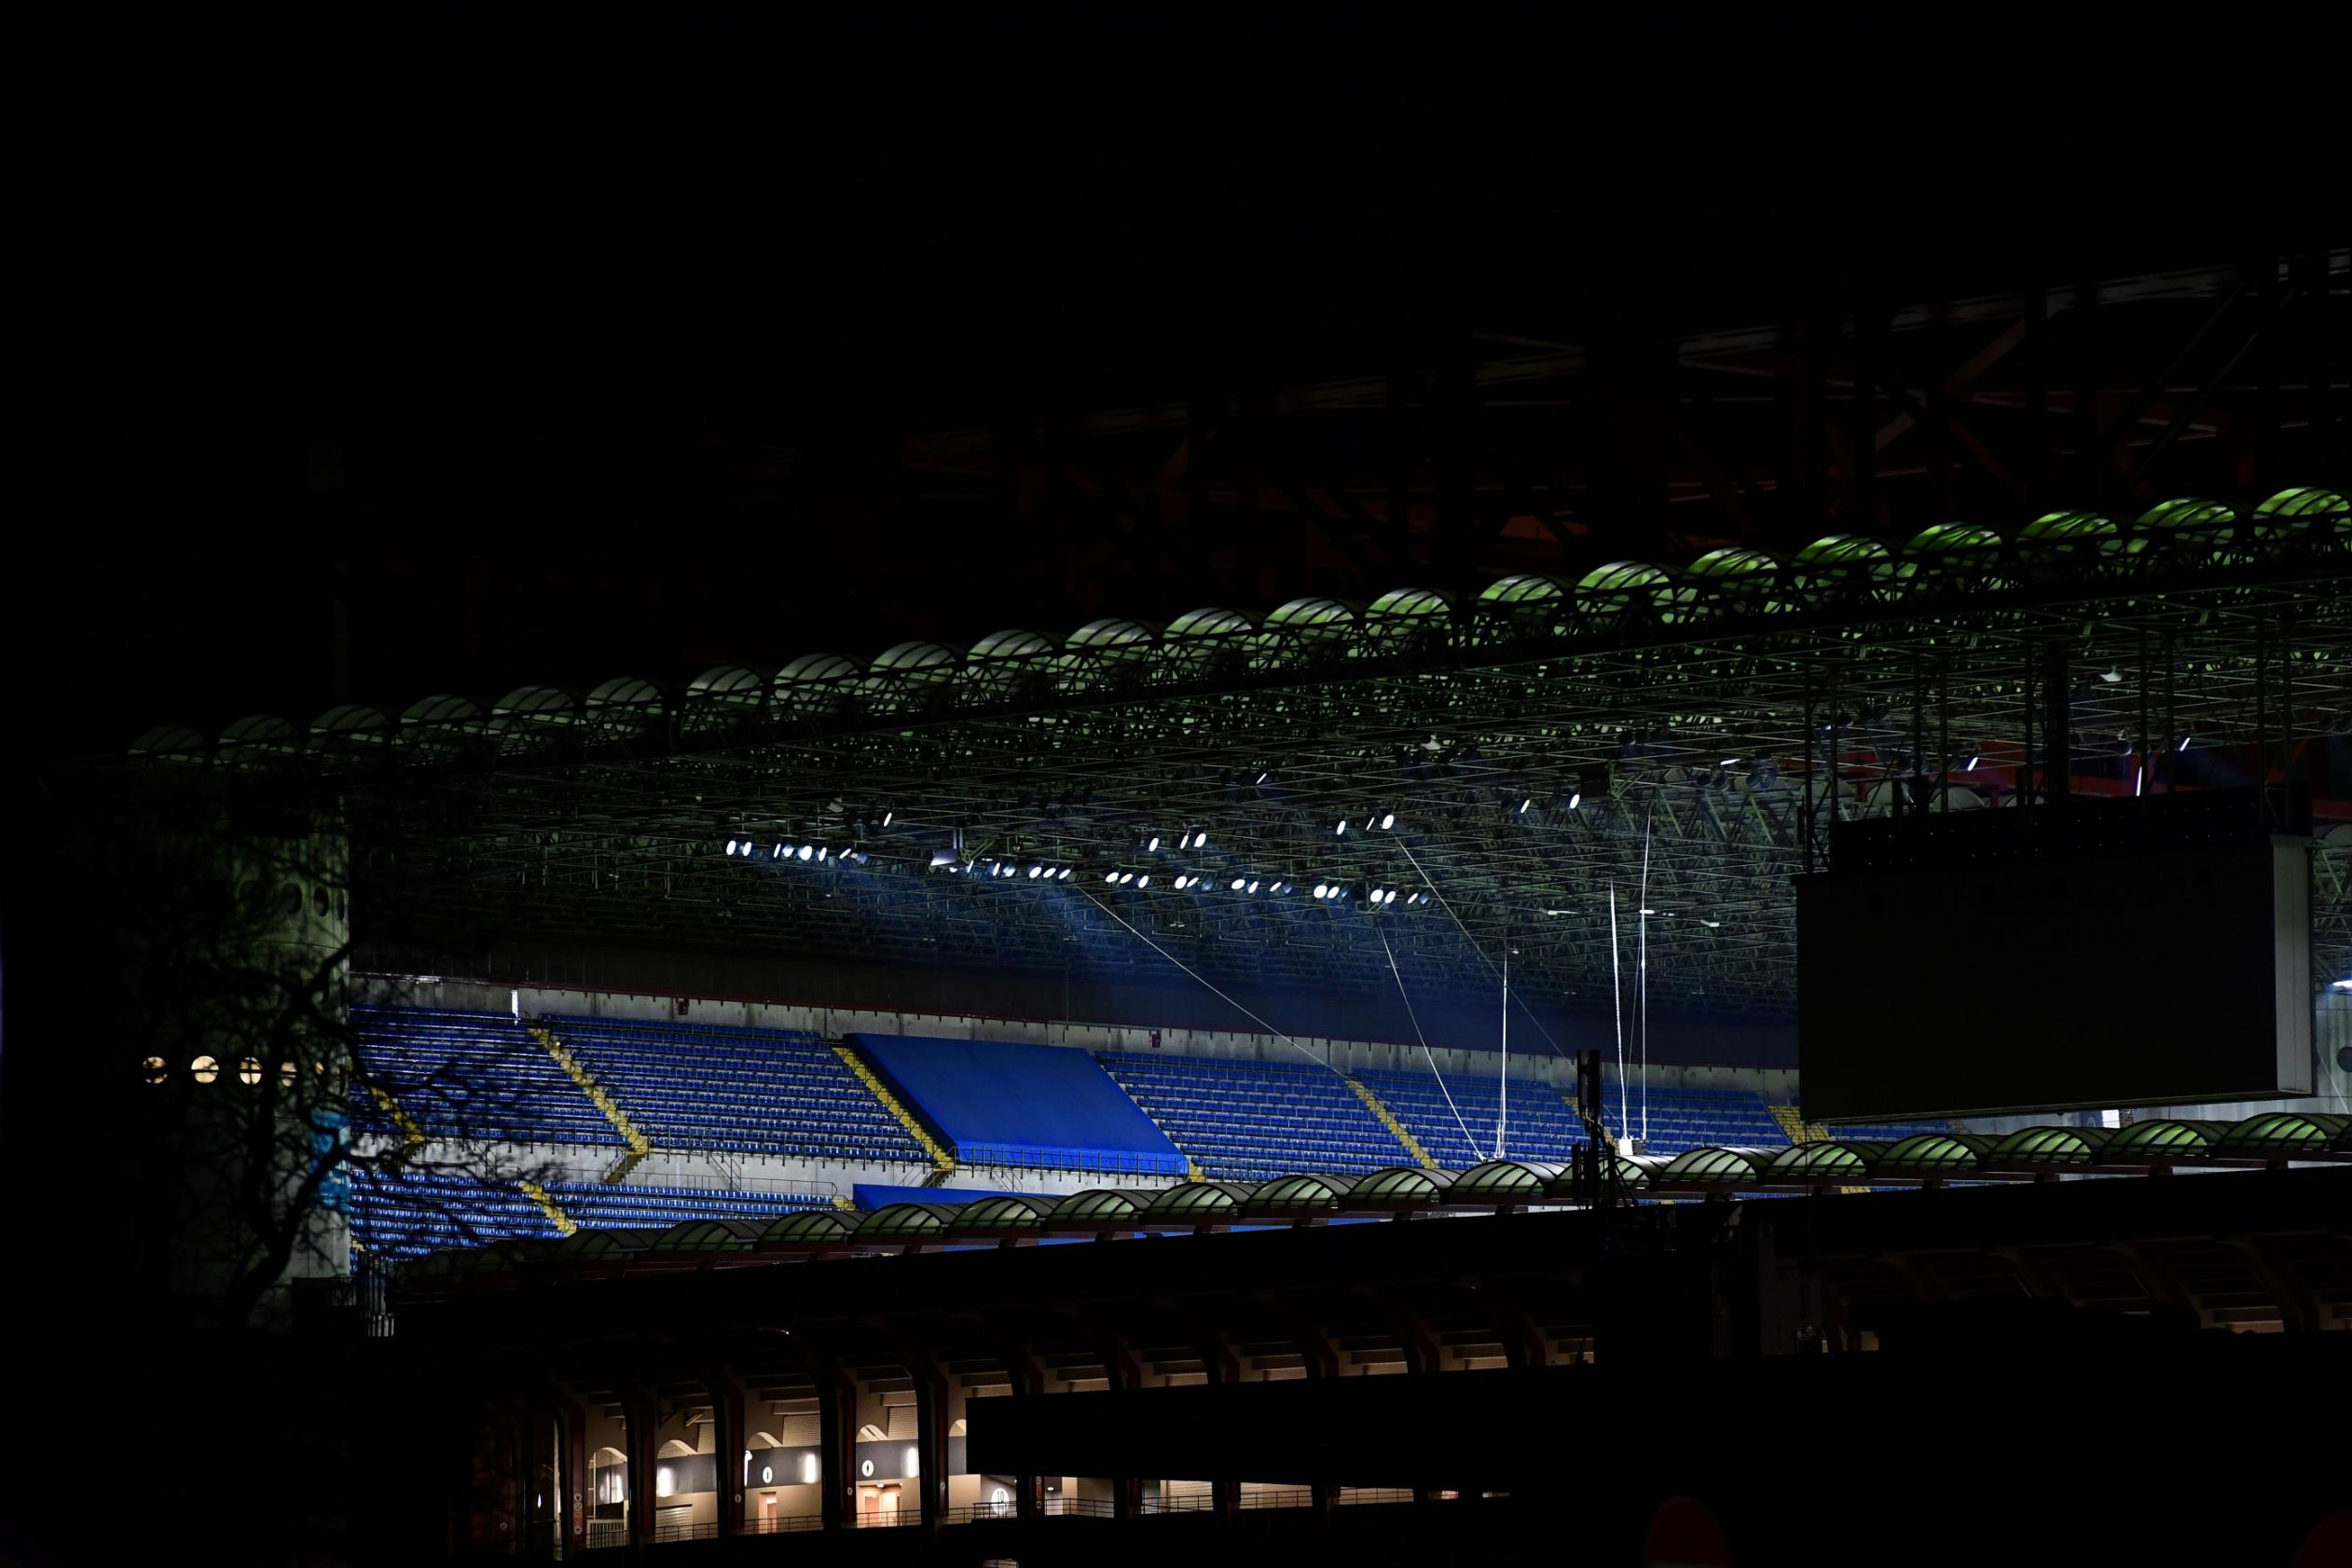 Inter Milan beat Ludogorets in front of an empty stadium amid coronavirus outbreak